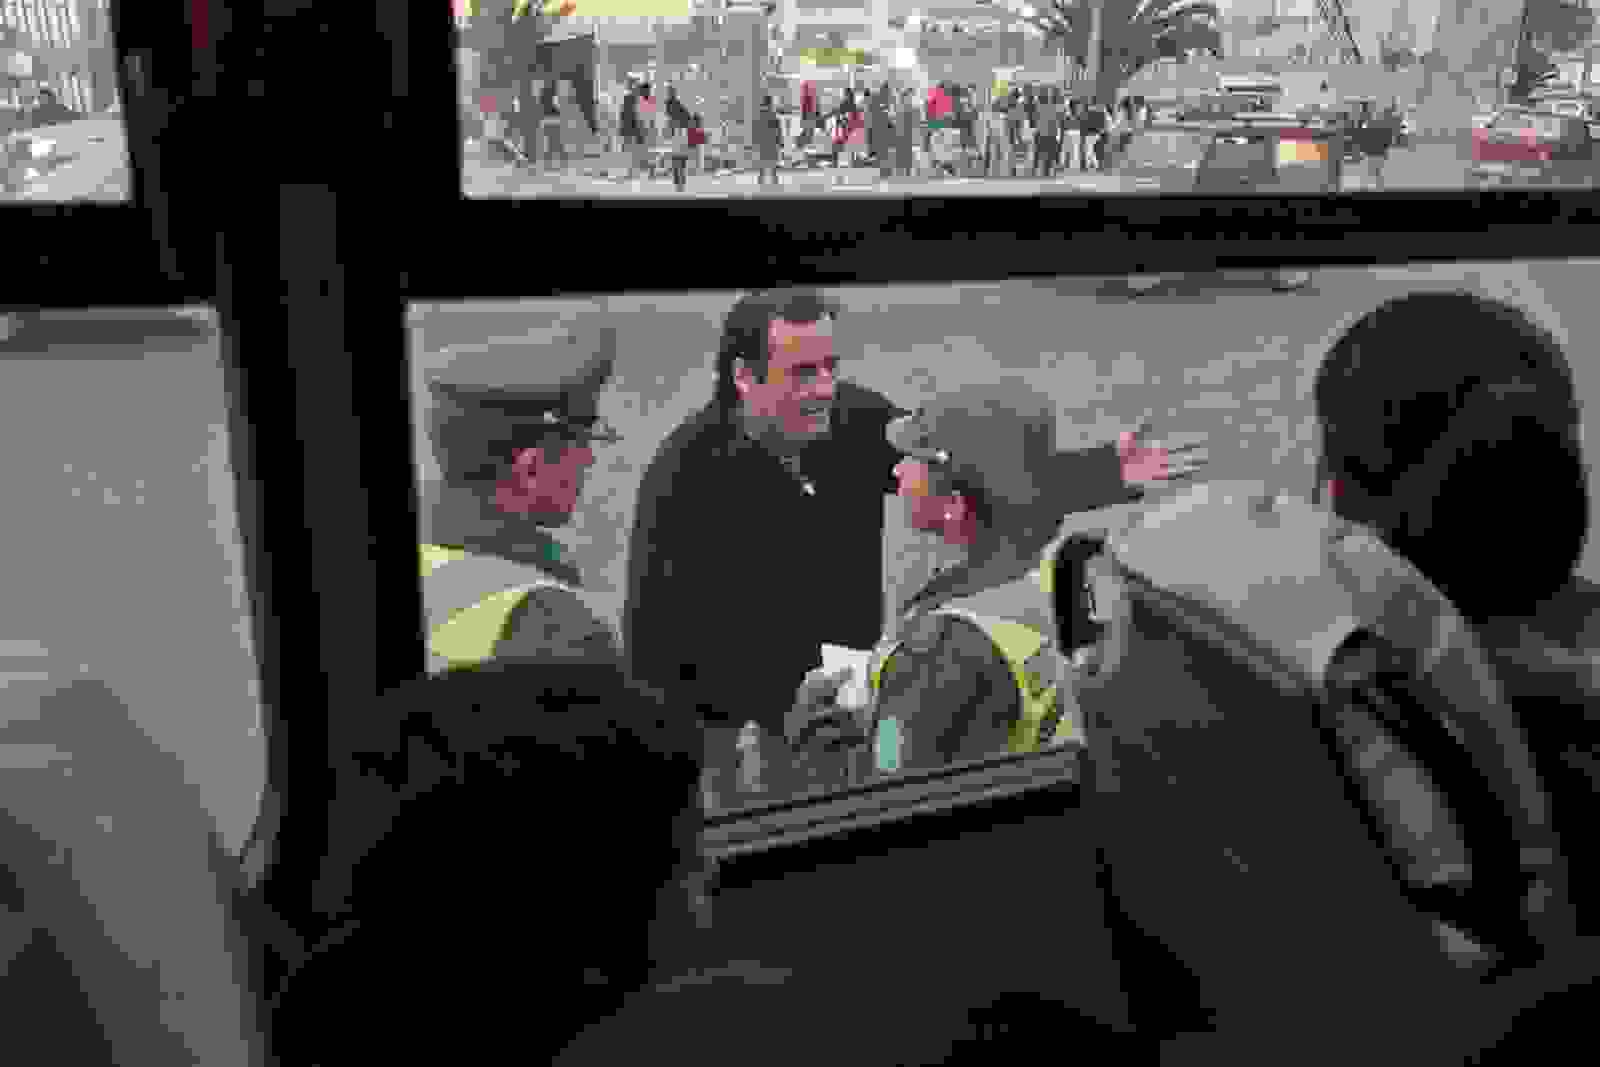 A bus driver argues with police in Valparaíso, Chile